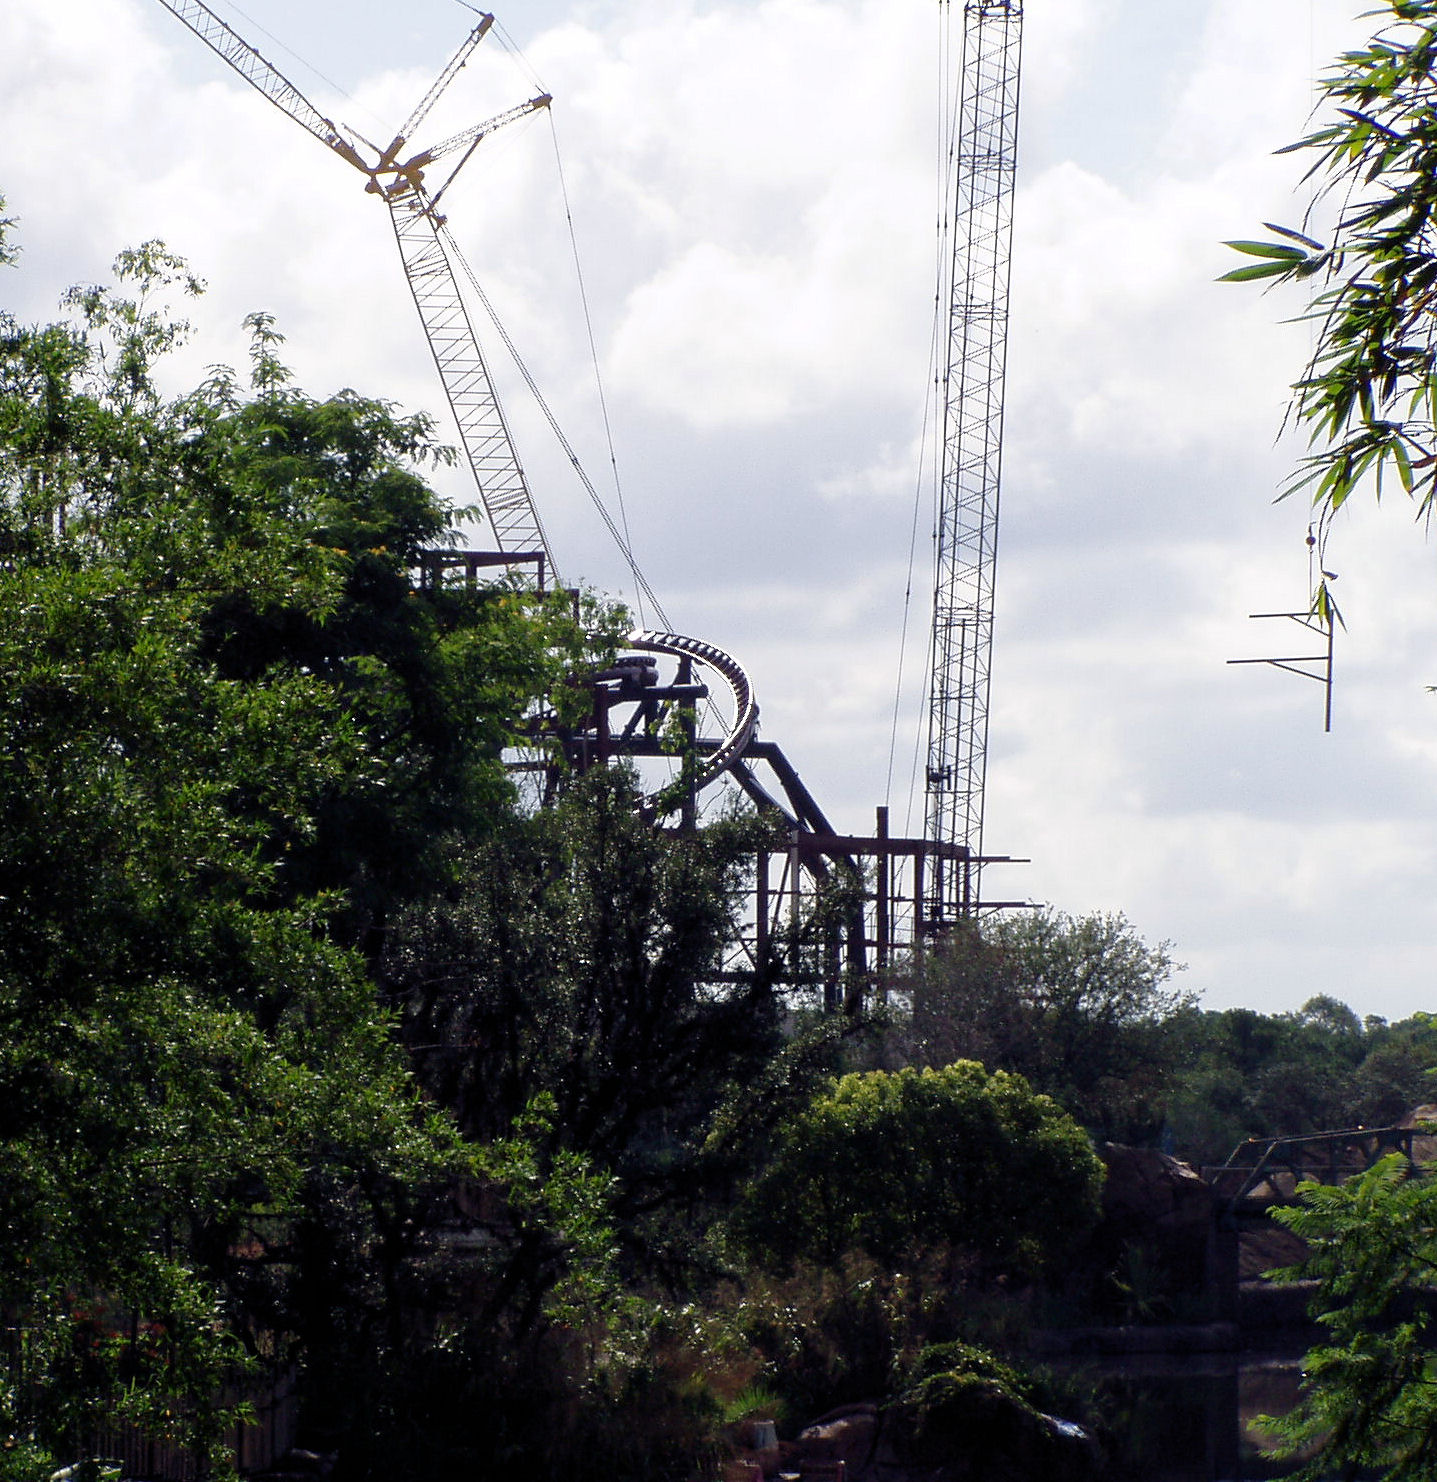 Yet another shot of the under construction Expedition Everest.